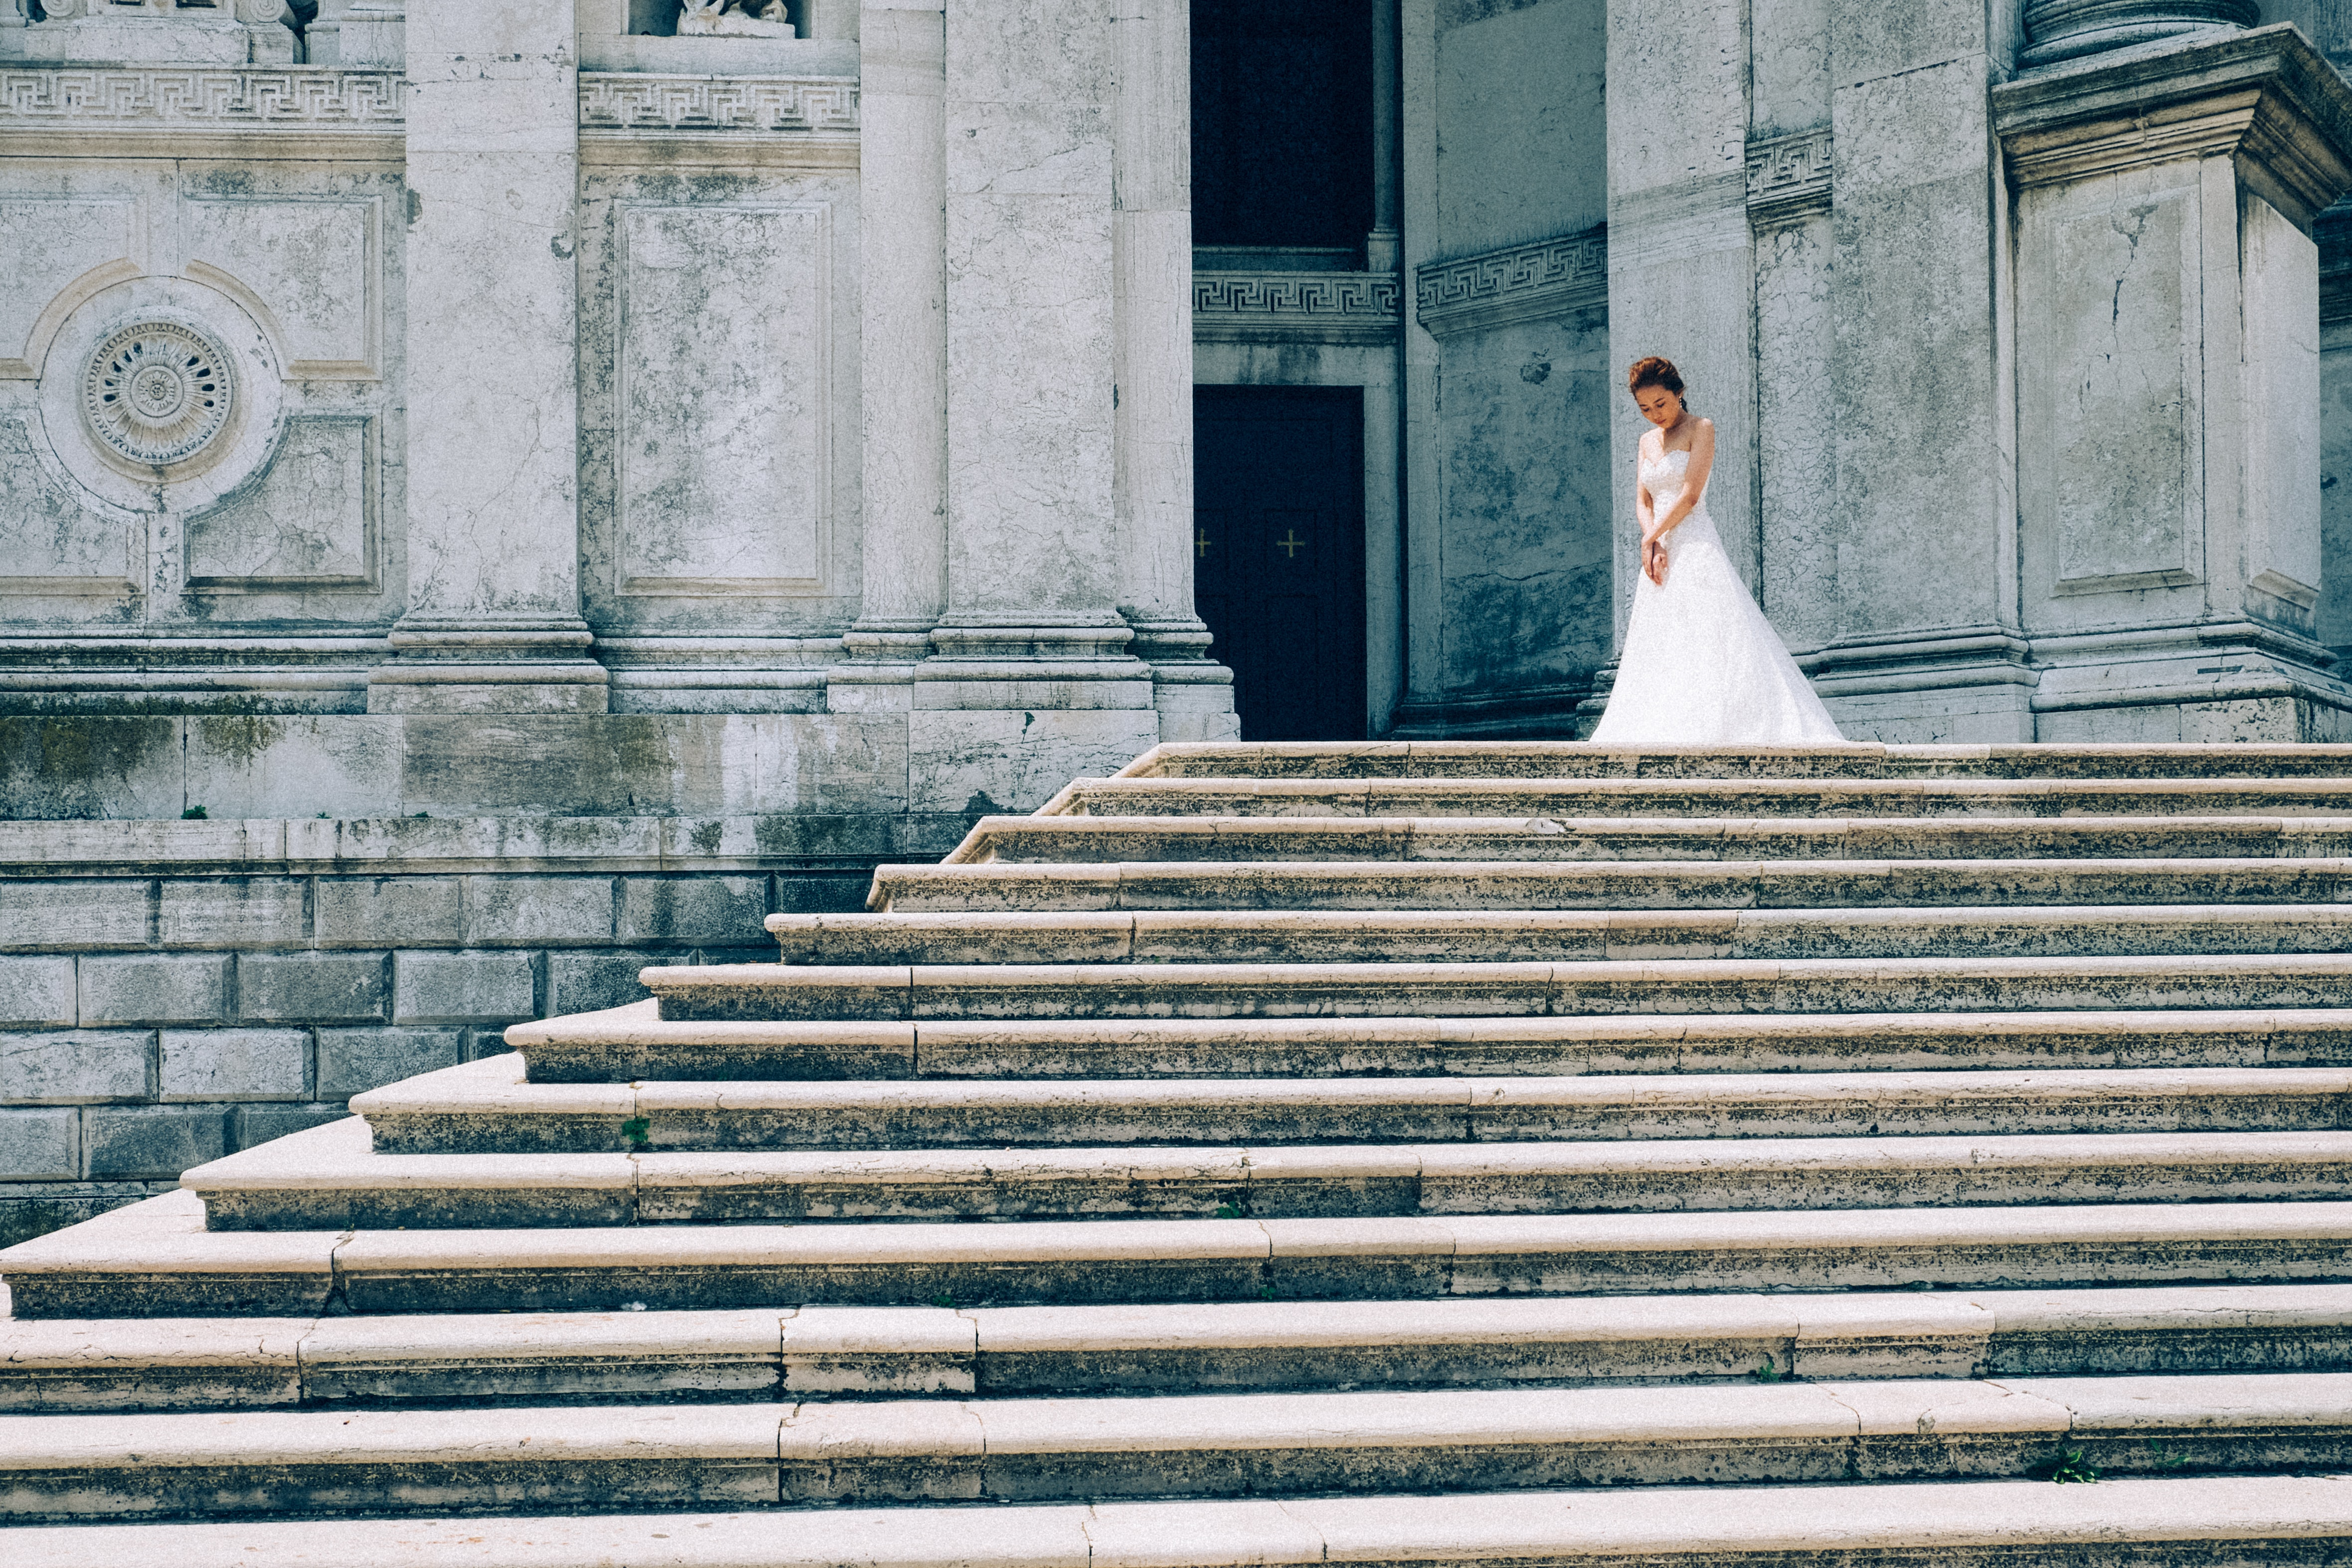 rule of thirds photograph of woman in white gown